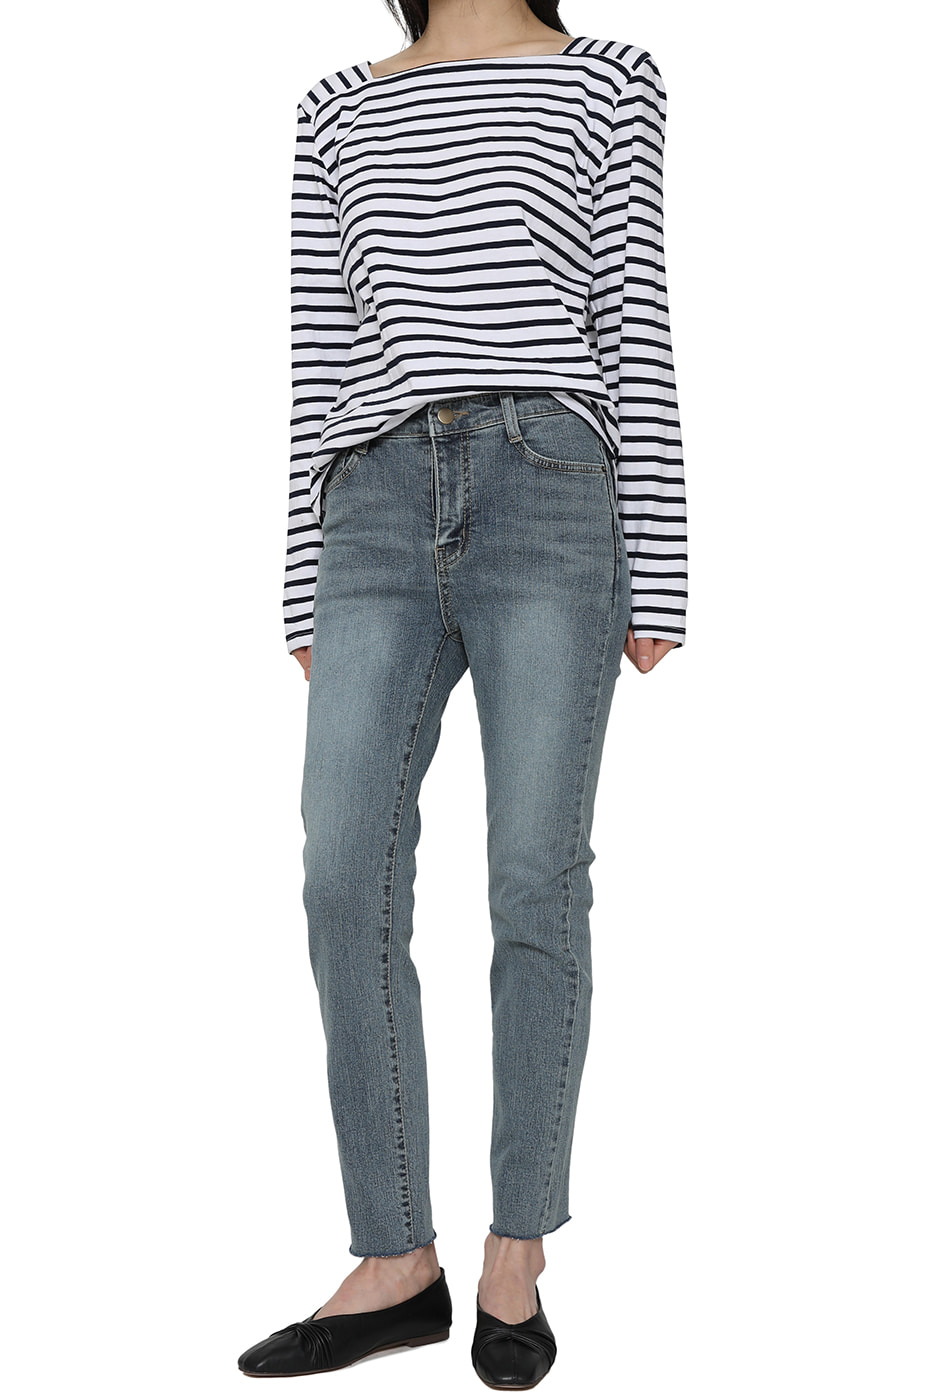 Sheer striped square-neck top